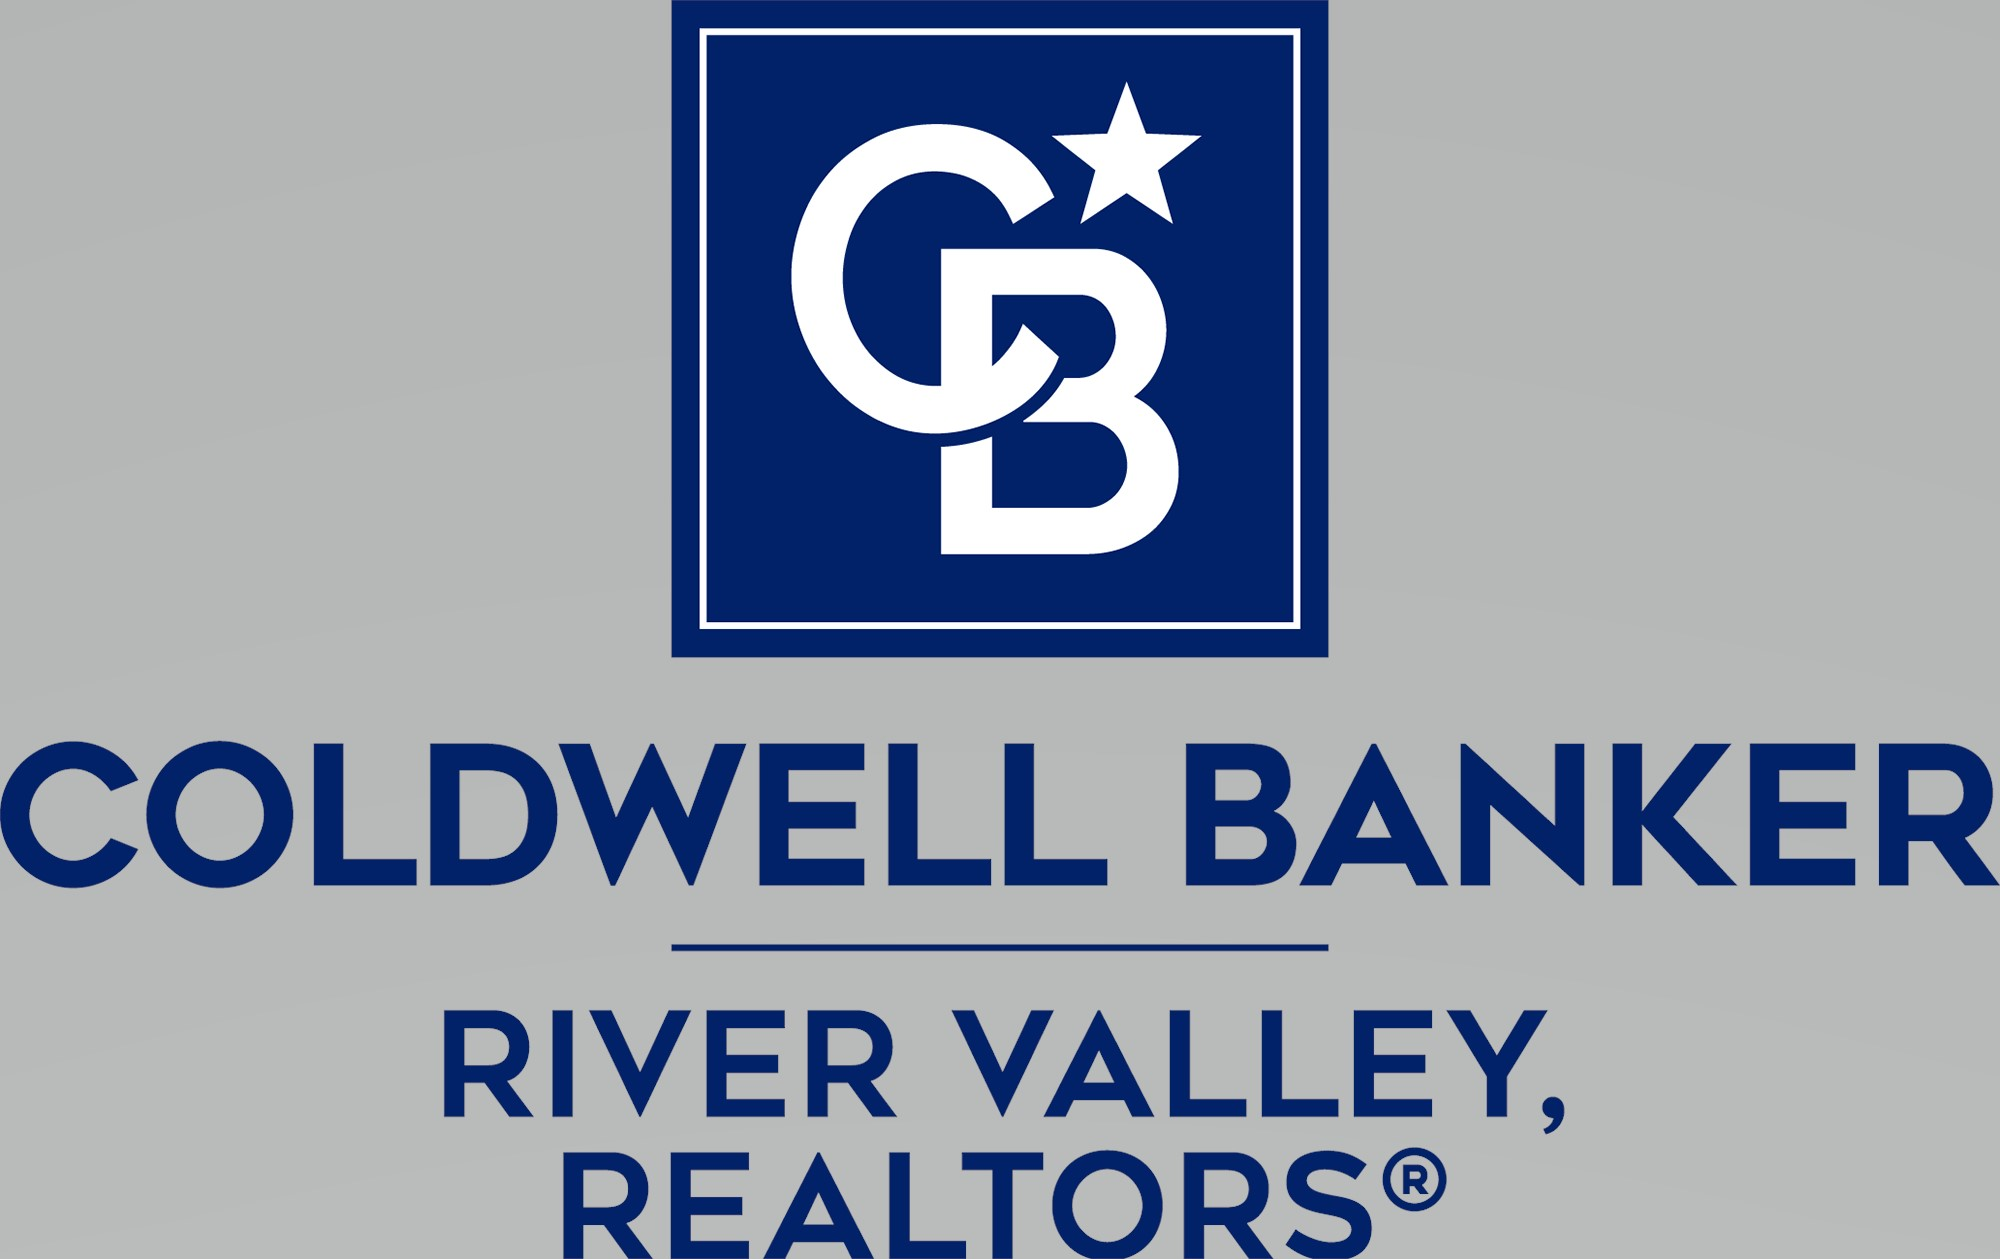 Kerry Jacobson - Coldwell Banker River Valley Realtors